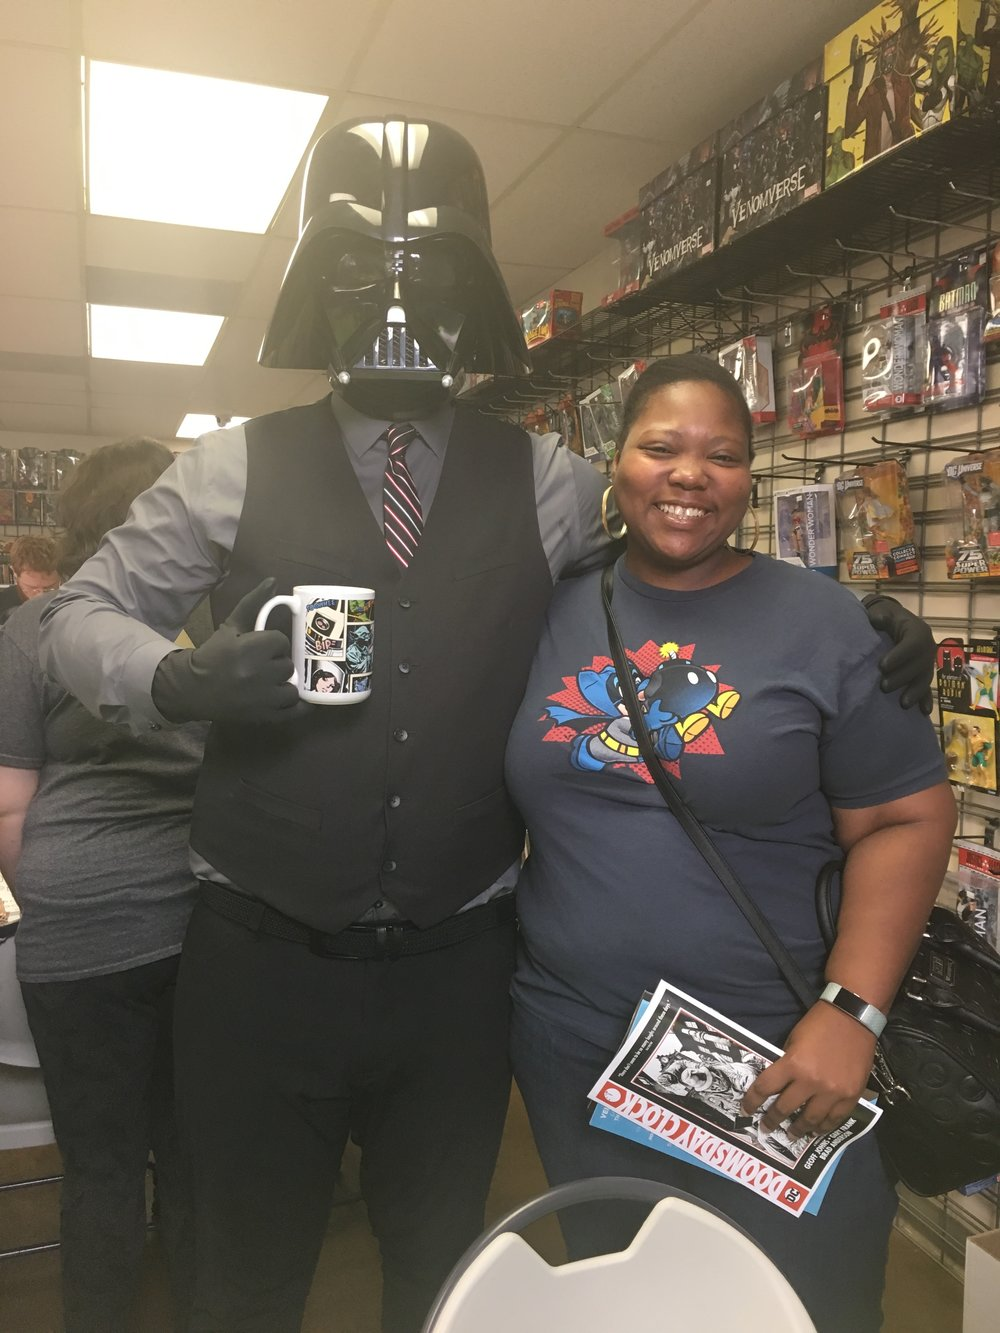 Me and Darth Vader at Free Comic Book Day. Lol